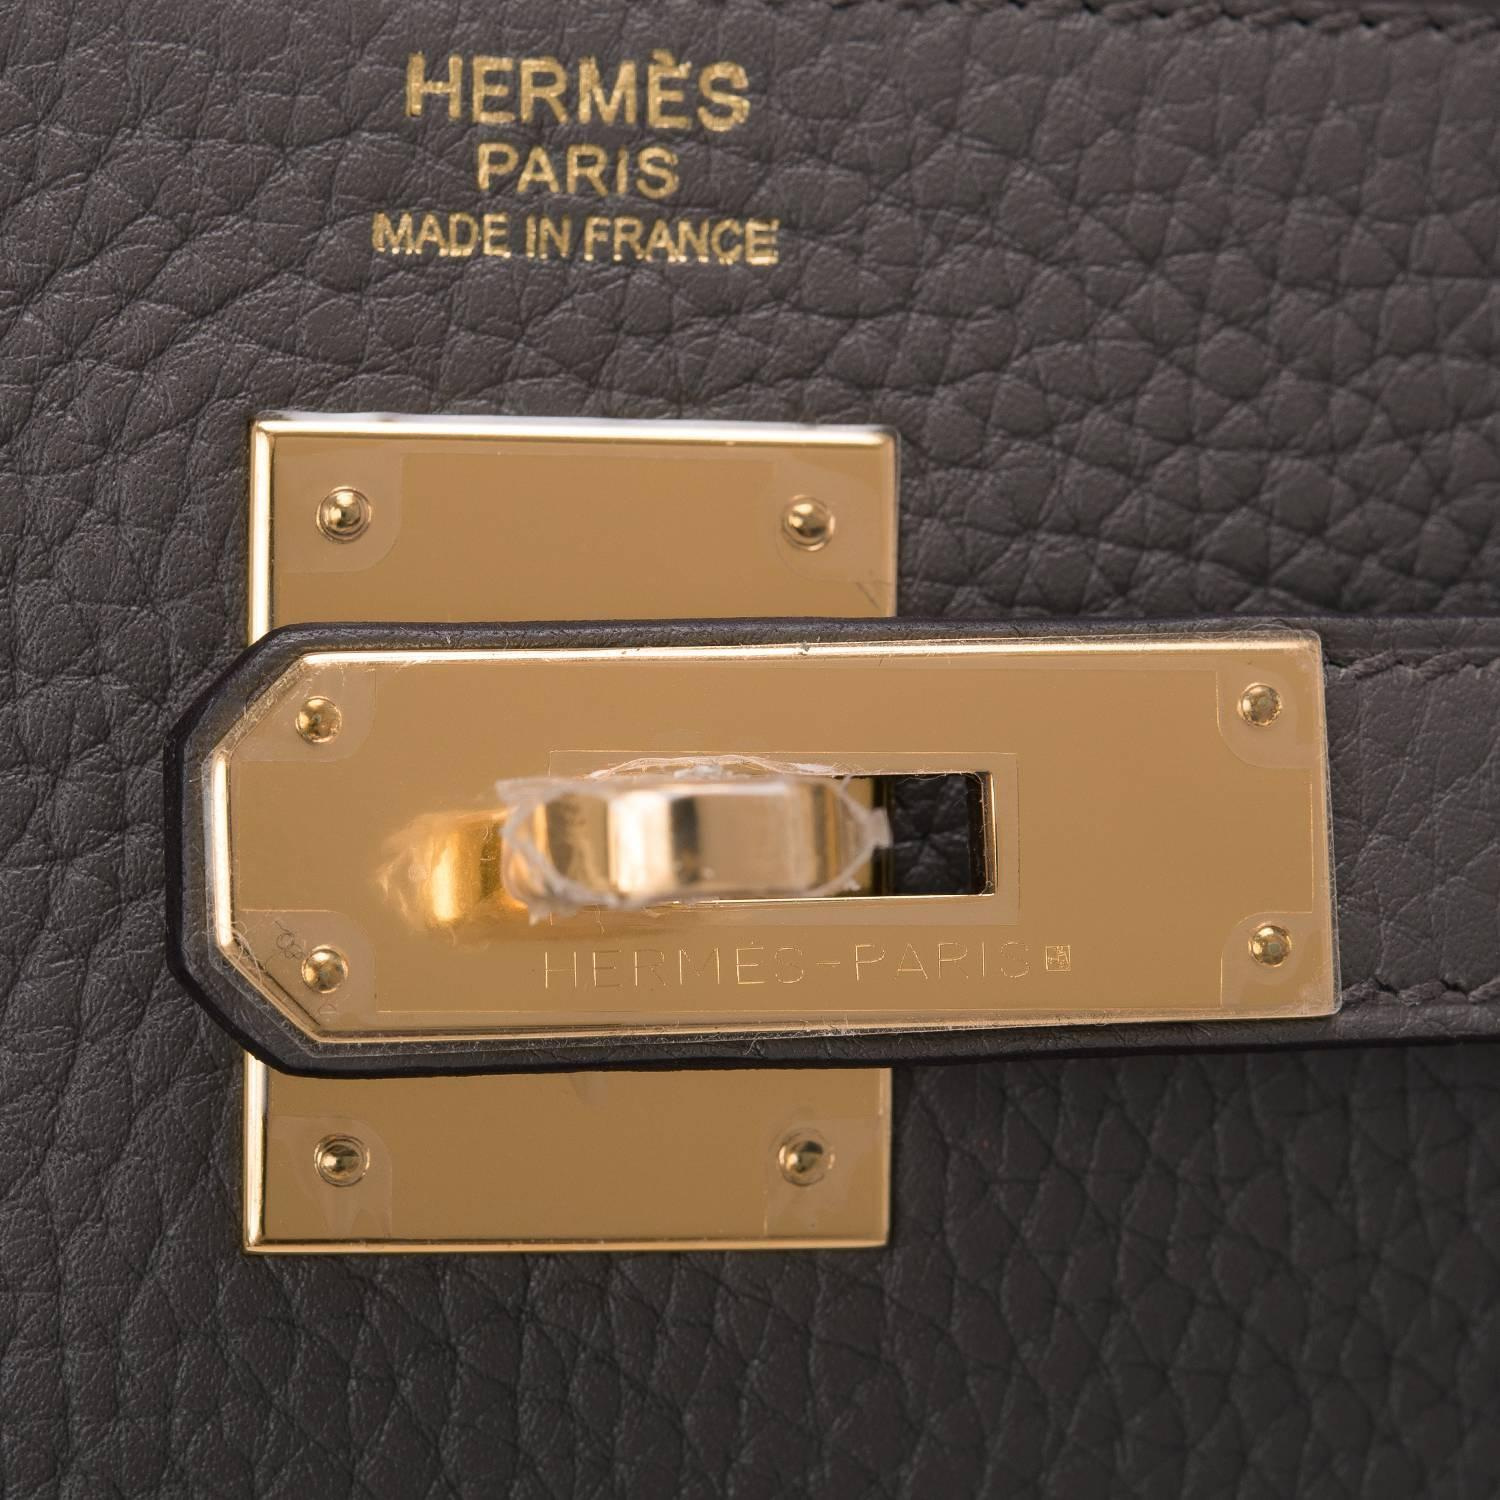 different styles of hermes bags - Hermes Etain Clemence Kelly 32cm Gold Hardware at 1stdibs